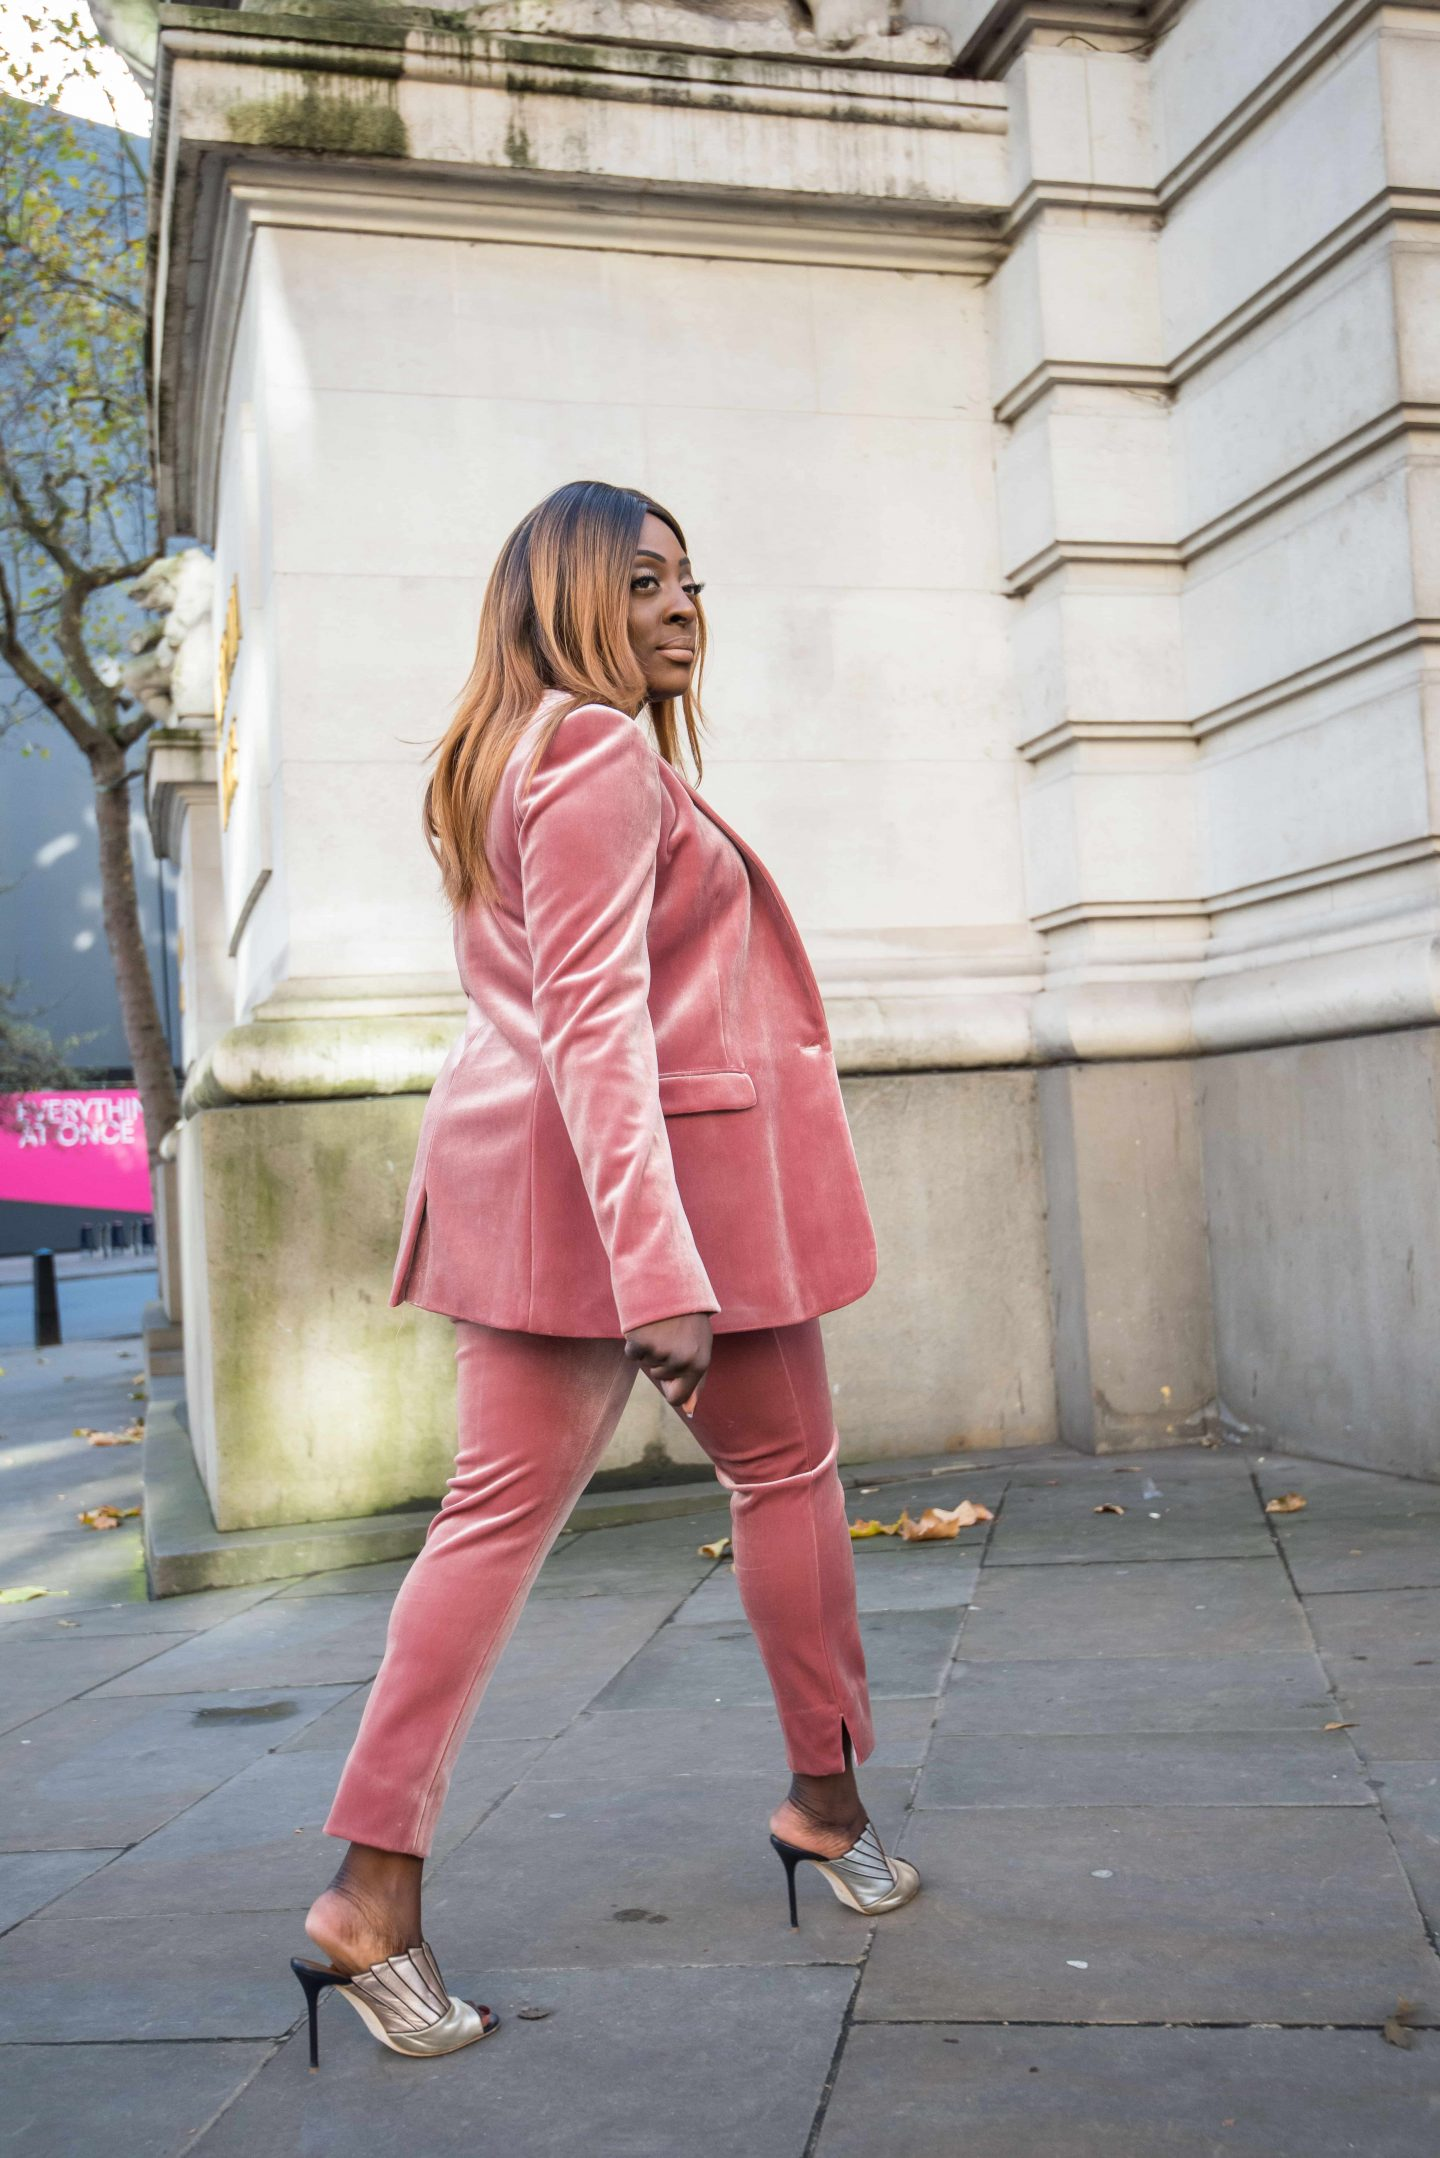 How to Style the Balenciaga Mini Bag 3 - belenciaga city bag -top shop velvet suit - malone souliers donna metalic mules - Style and the Sass